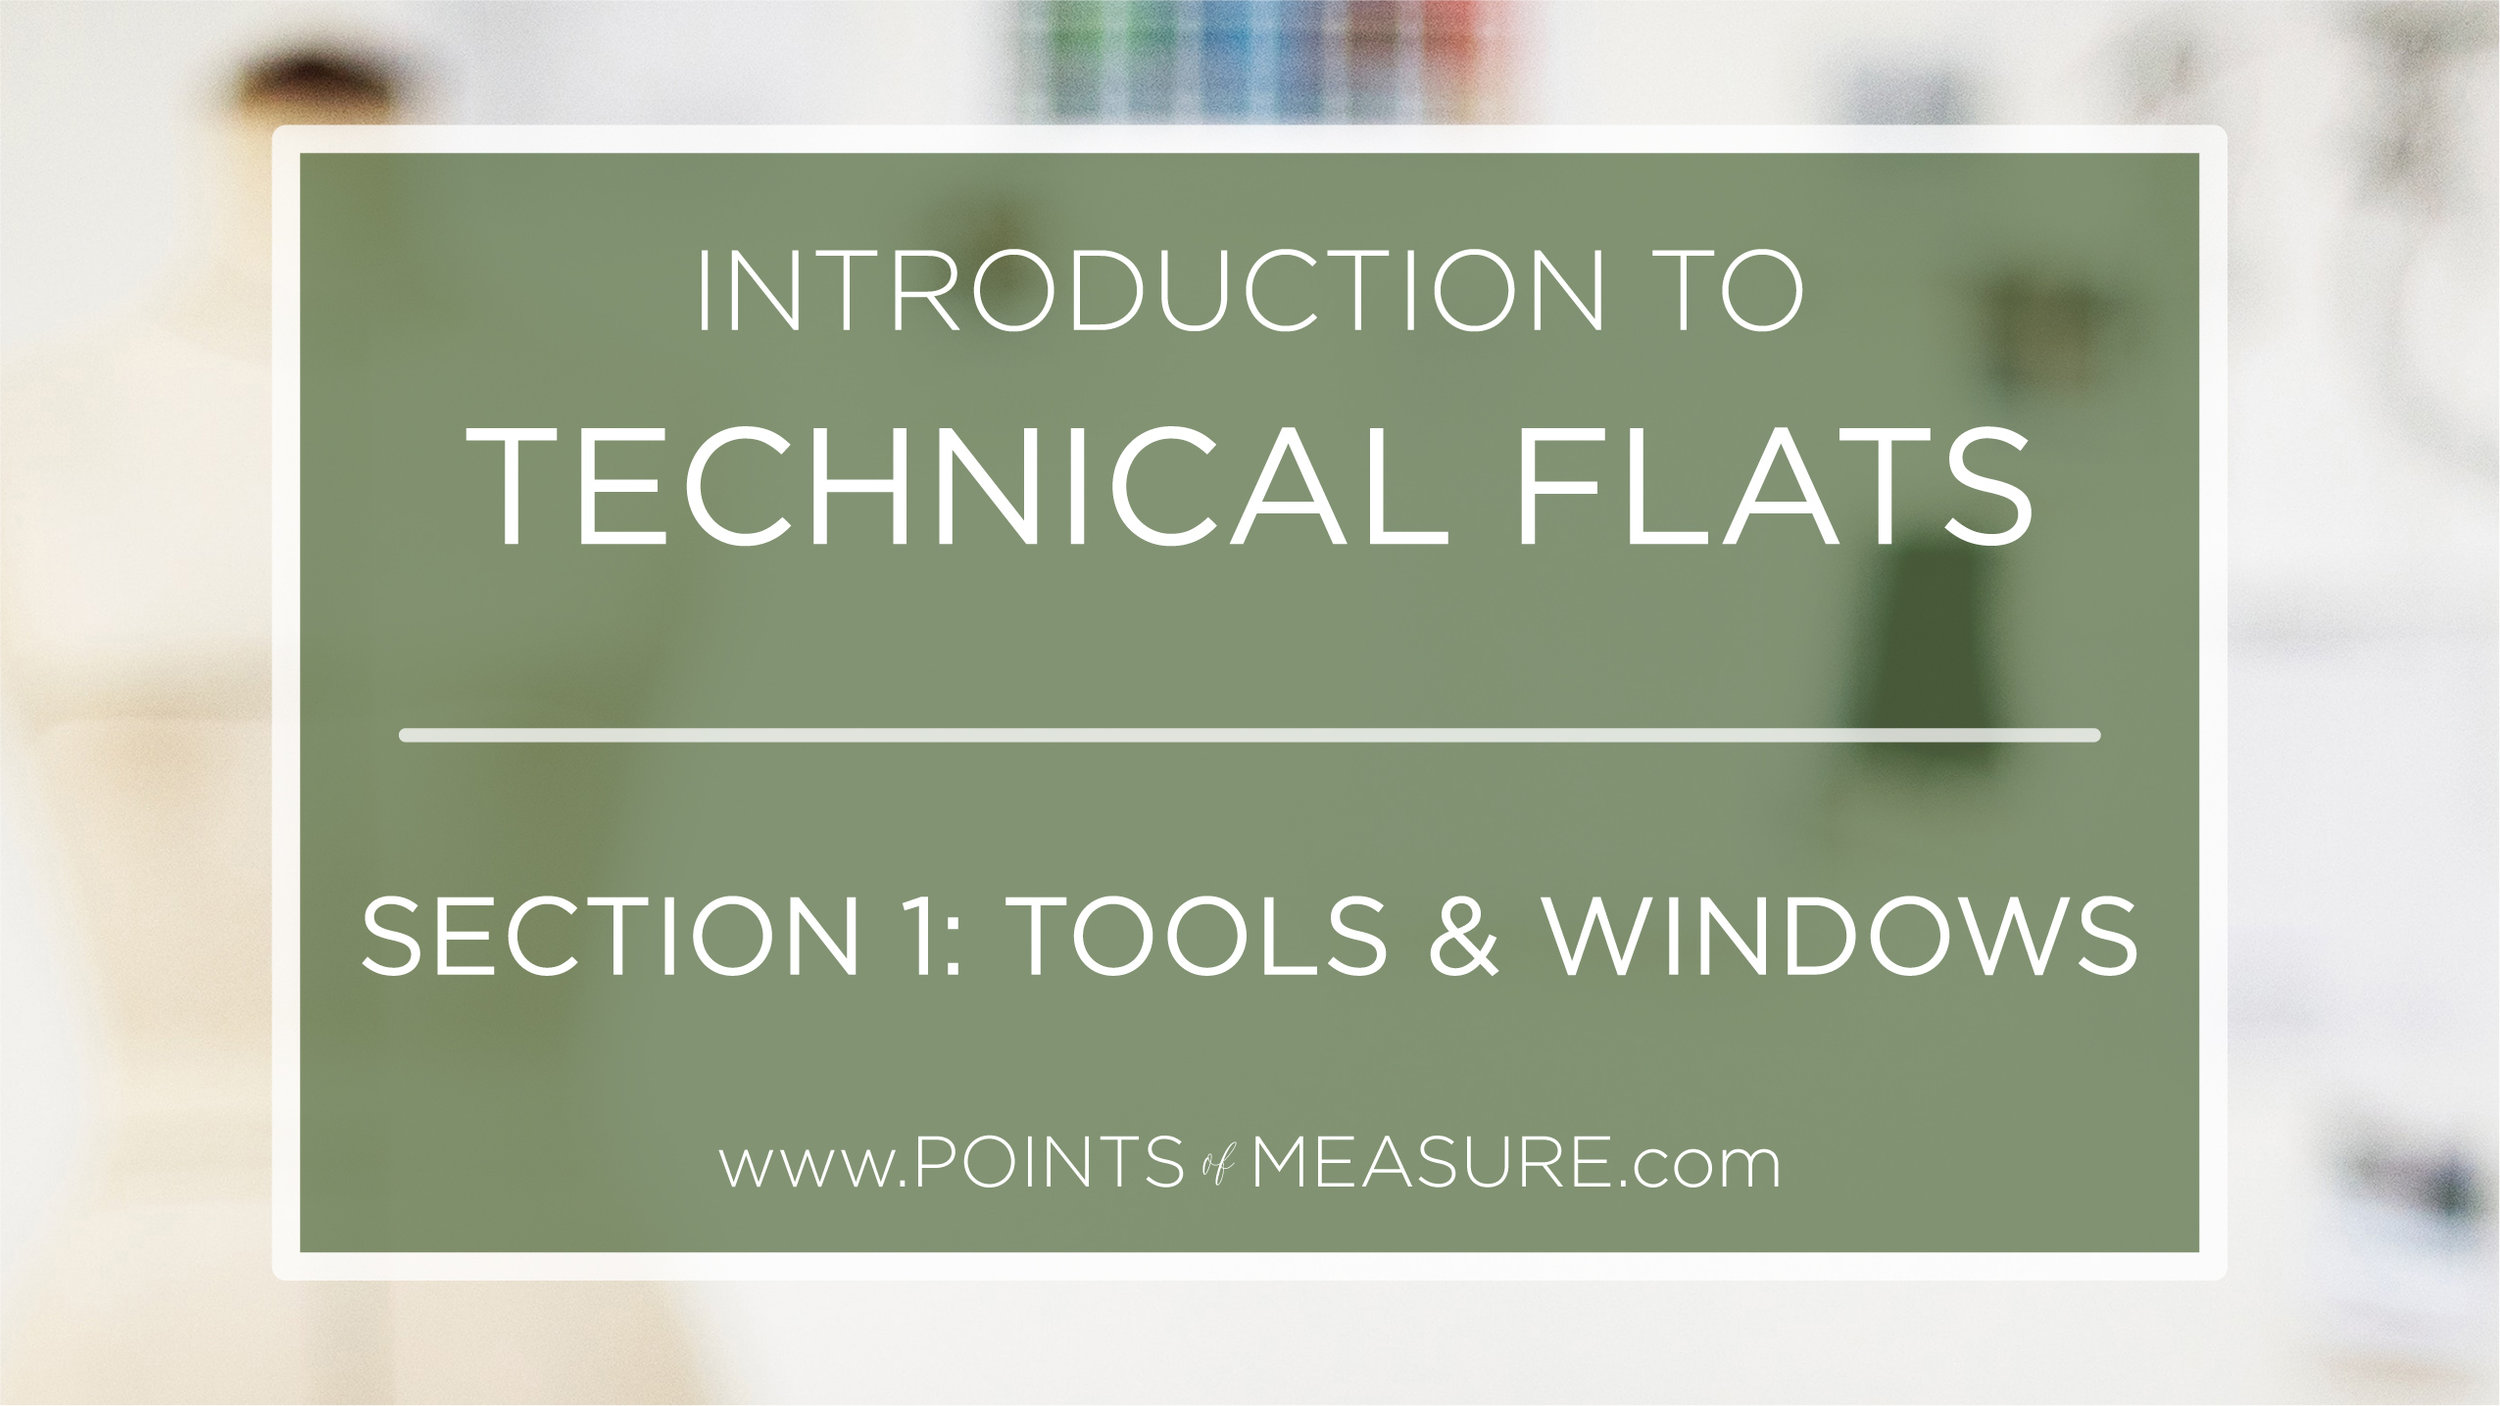 Introduction-to-technical-flats-tools-and-windows-points-of-measure.jpg